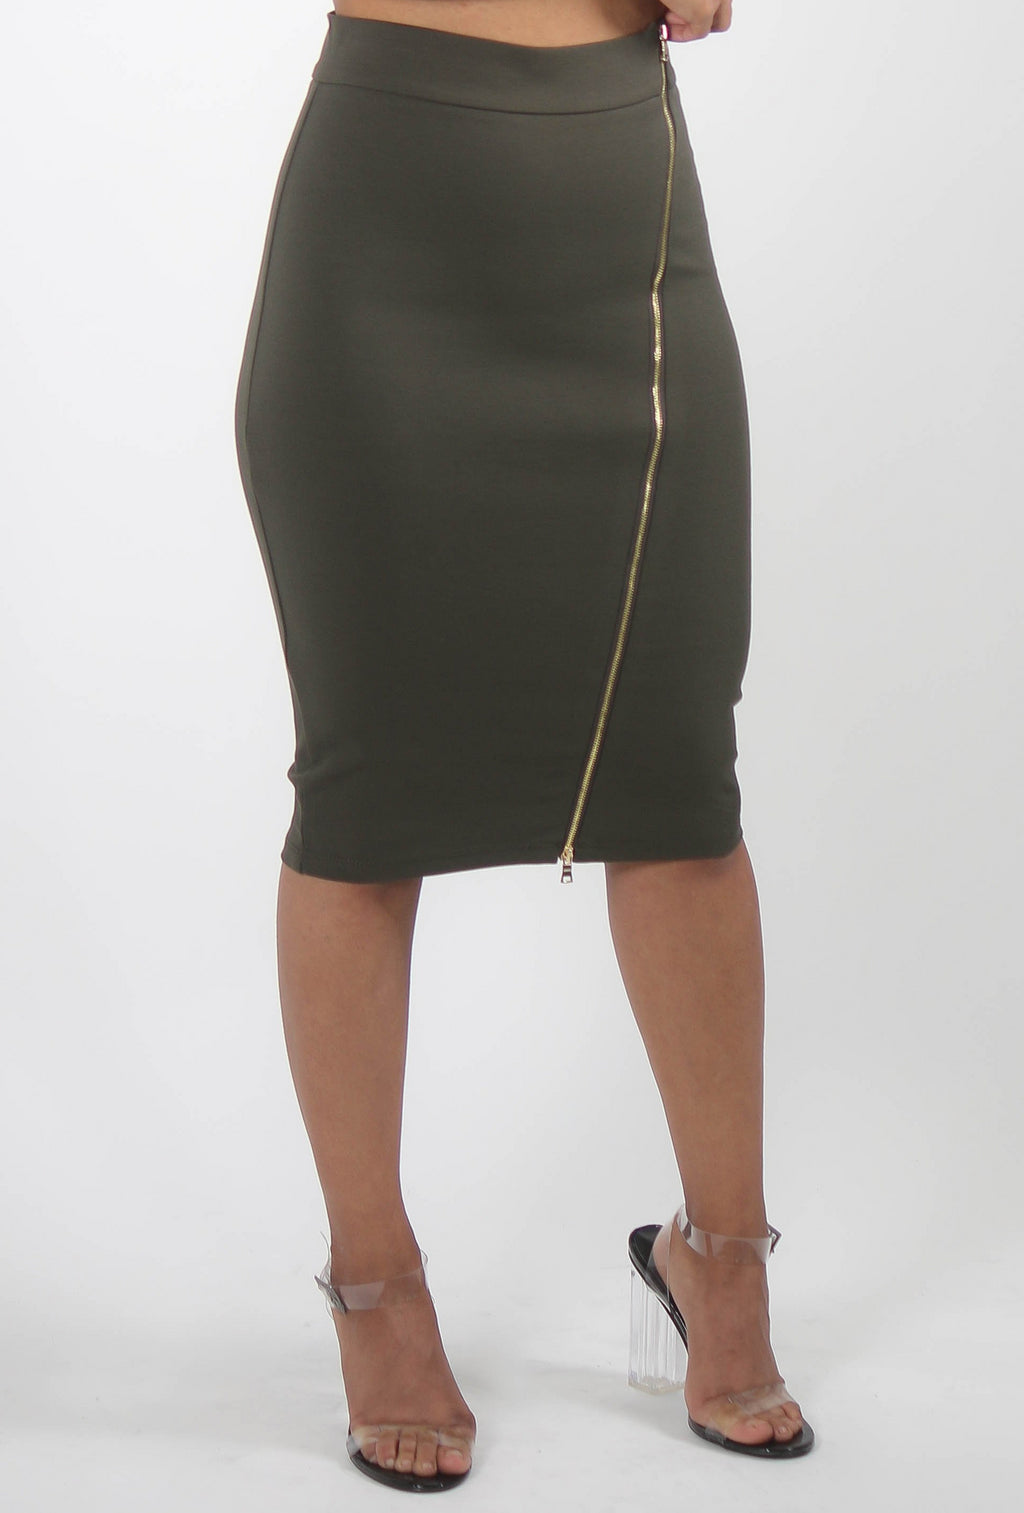 Asymmetrical Zipper Ponte Pencil Skirt